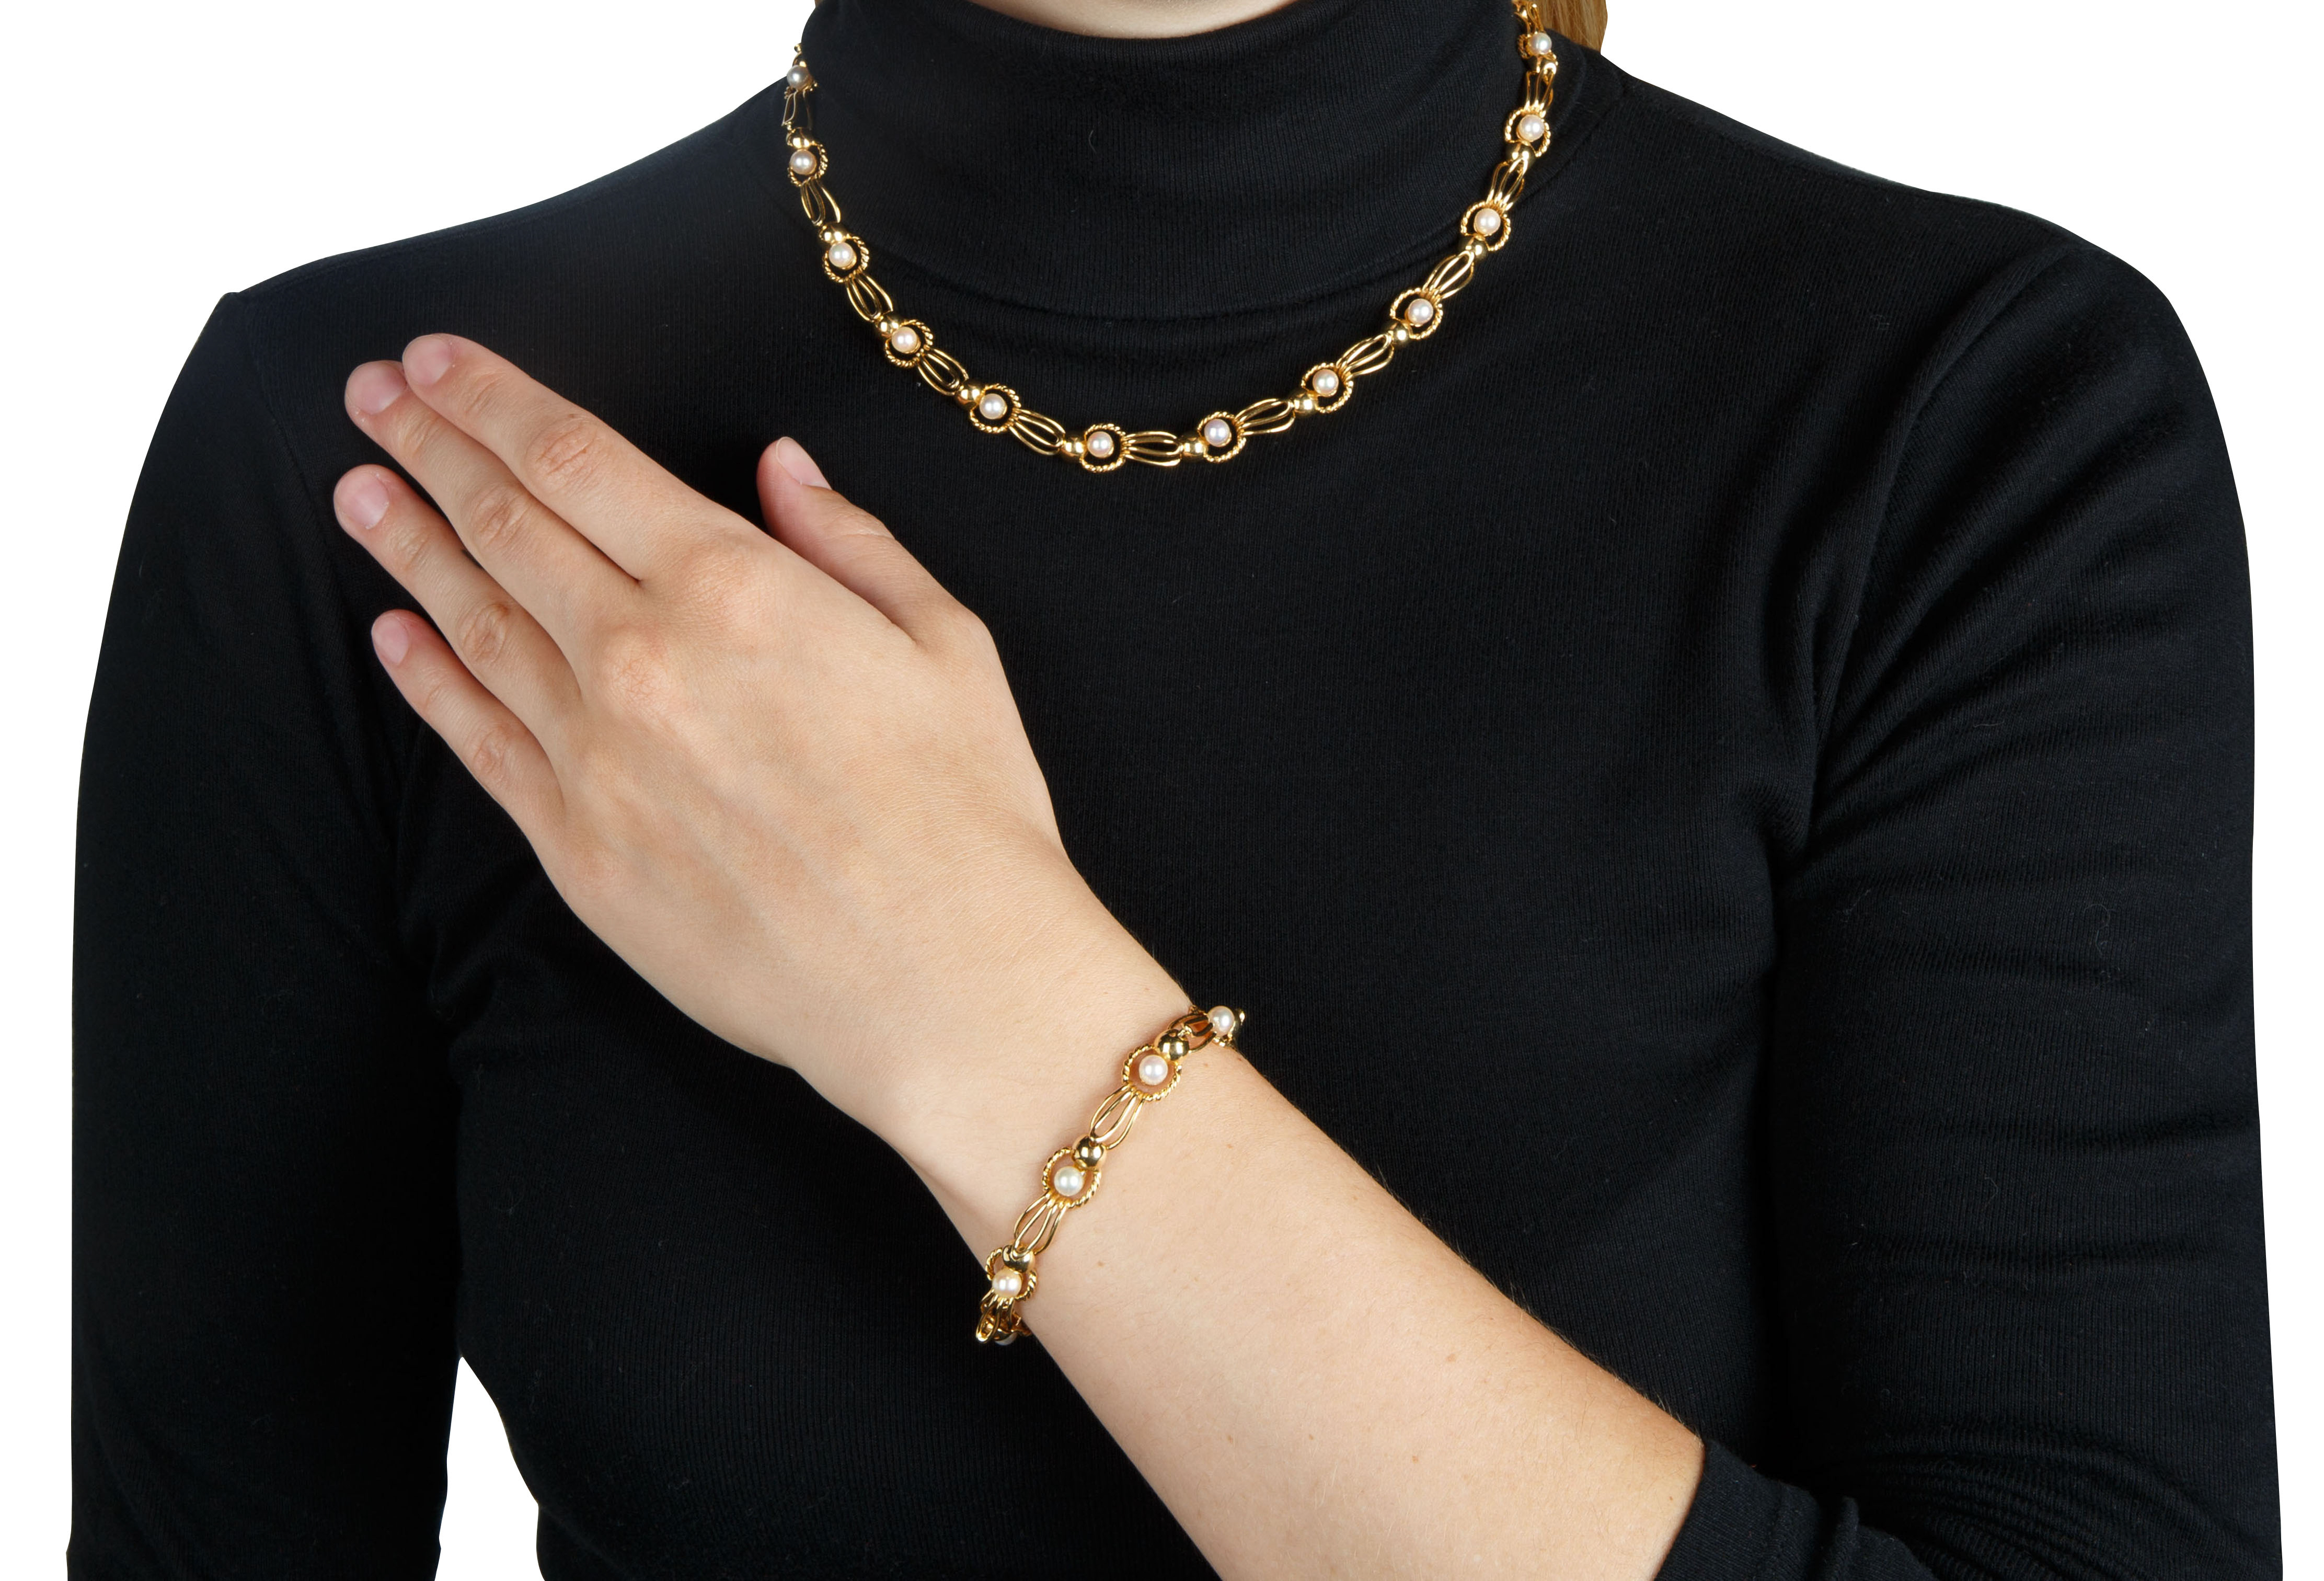 PEARL AND 18KT GOLD BRACELET AND NECKLACE SET - Image 8 of 8